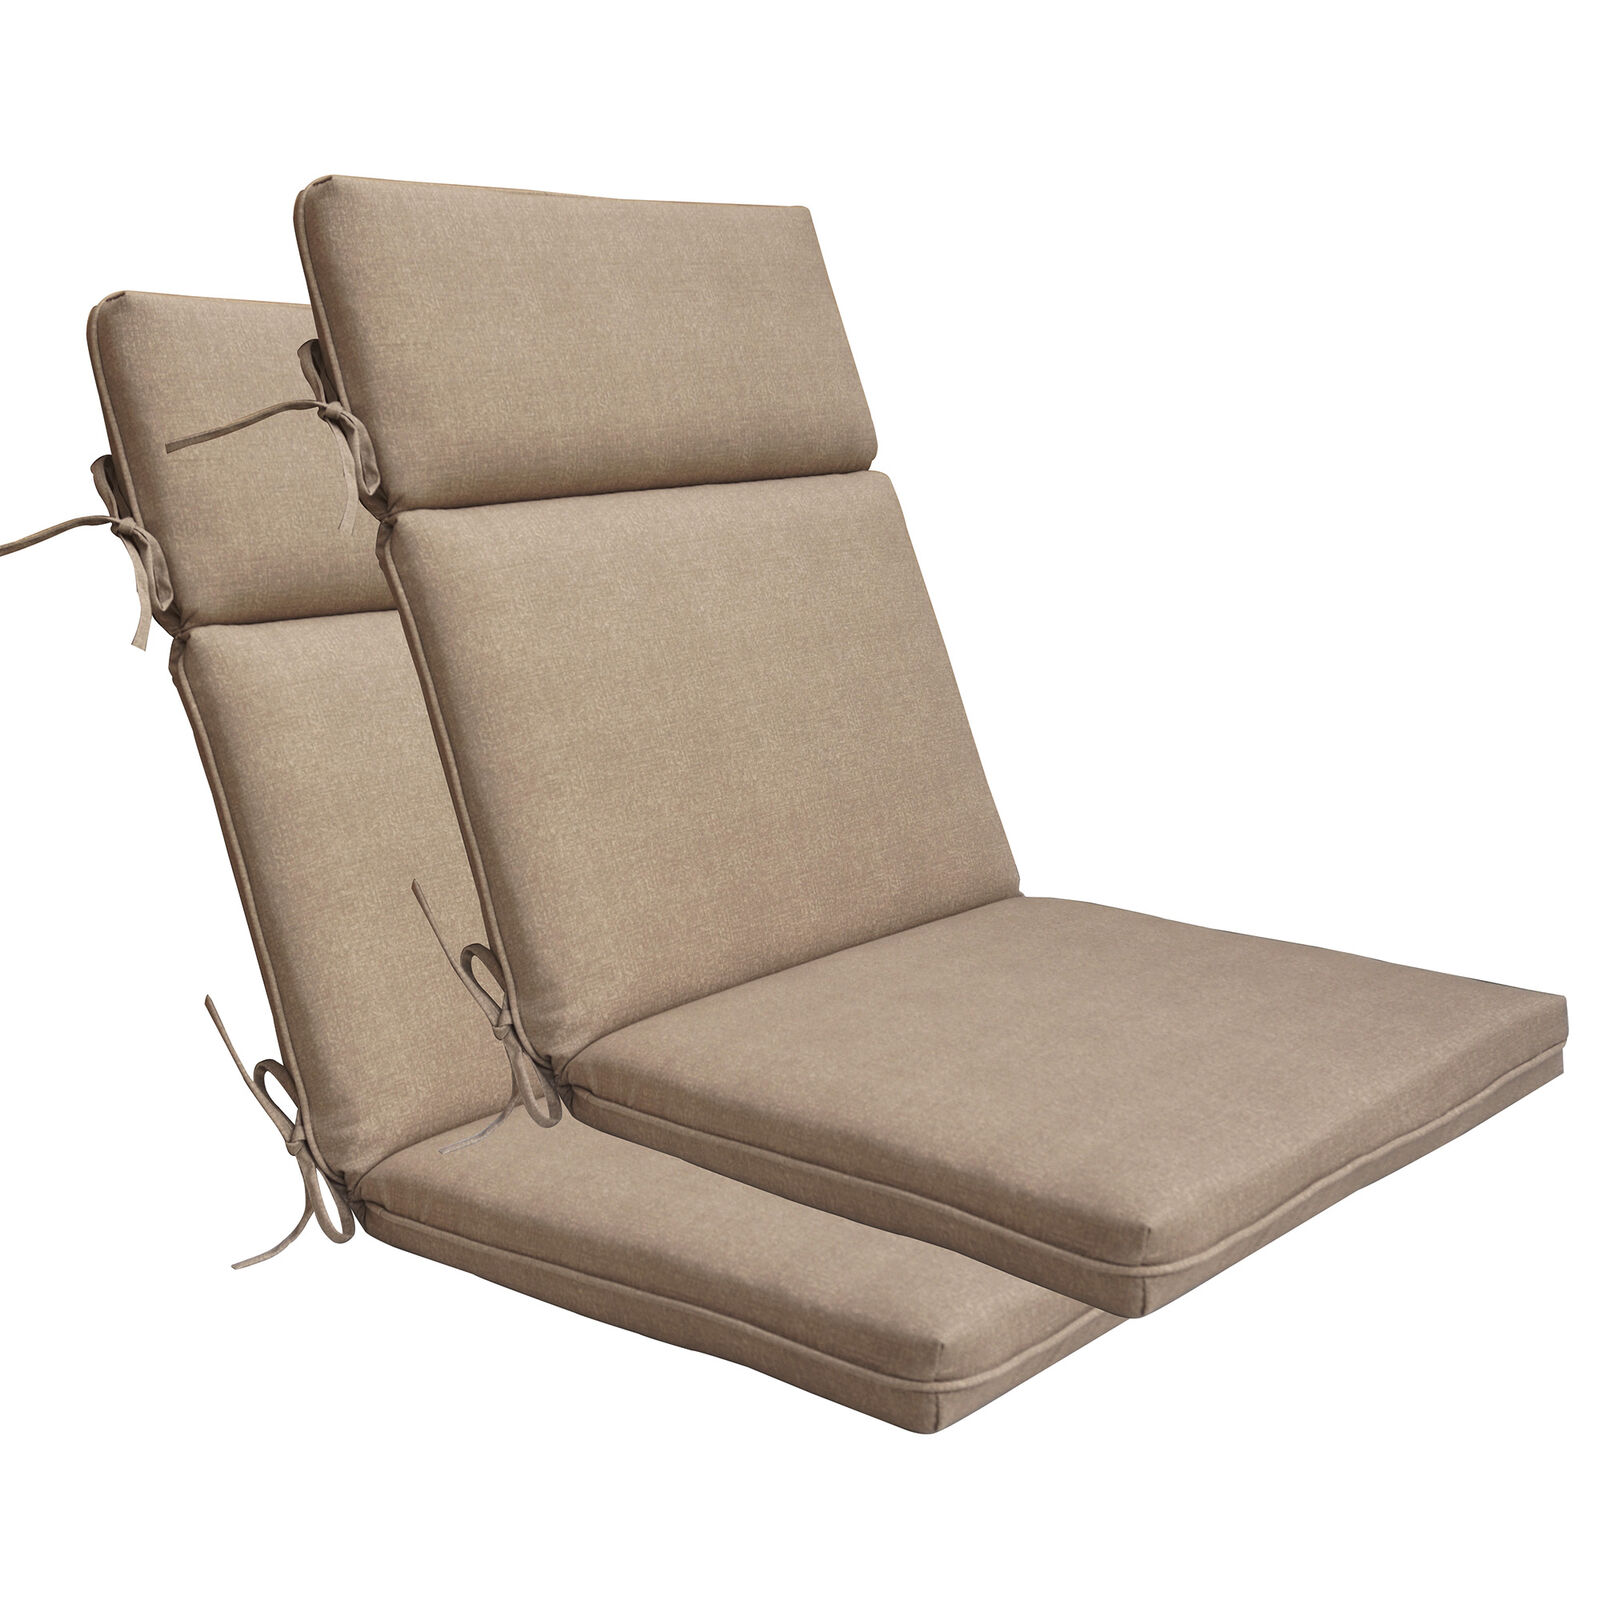 Casual Cushion High Back Chair Hinged Outdoor Cushion Set Of 2 For Sale Online Ebay